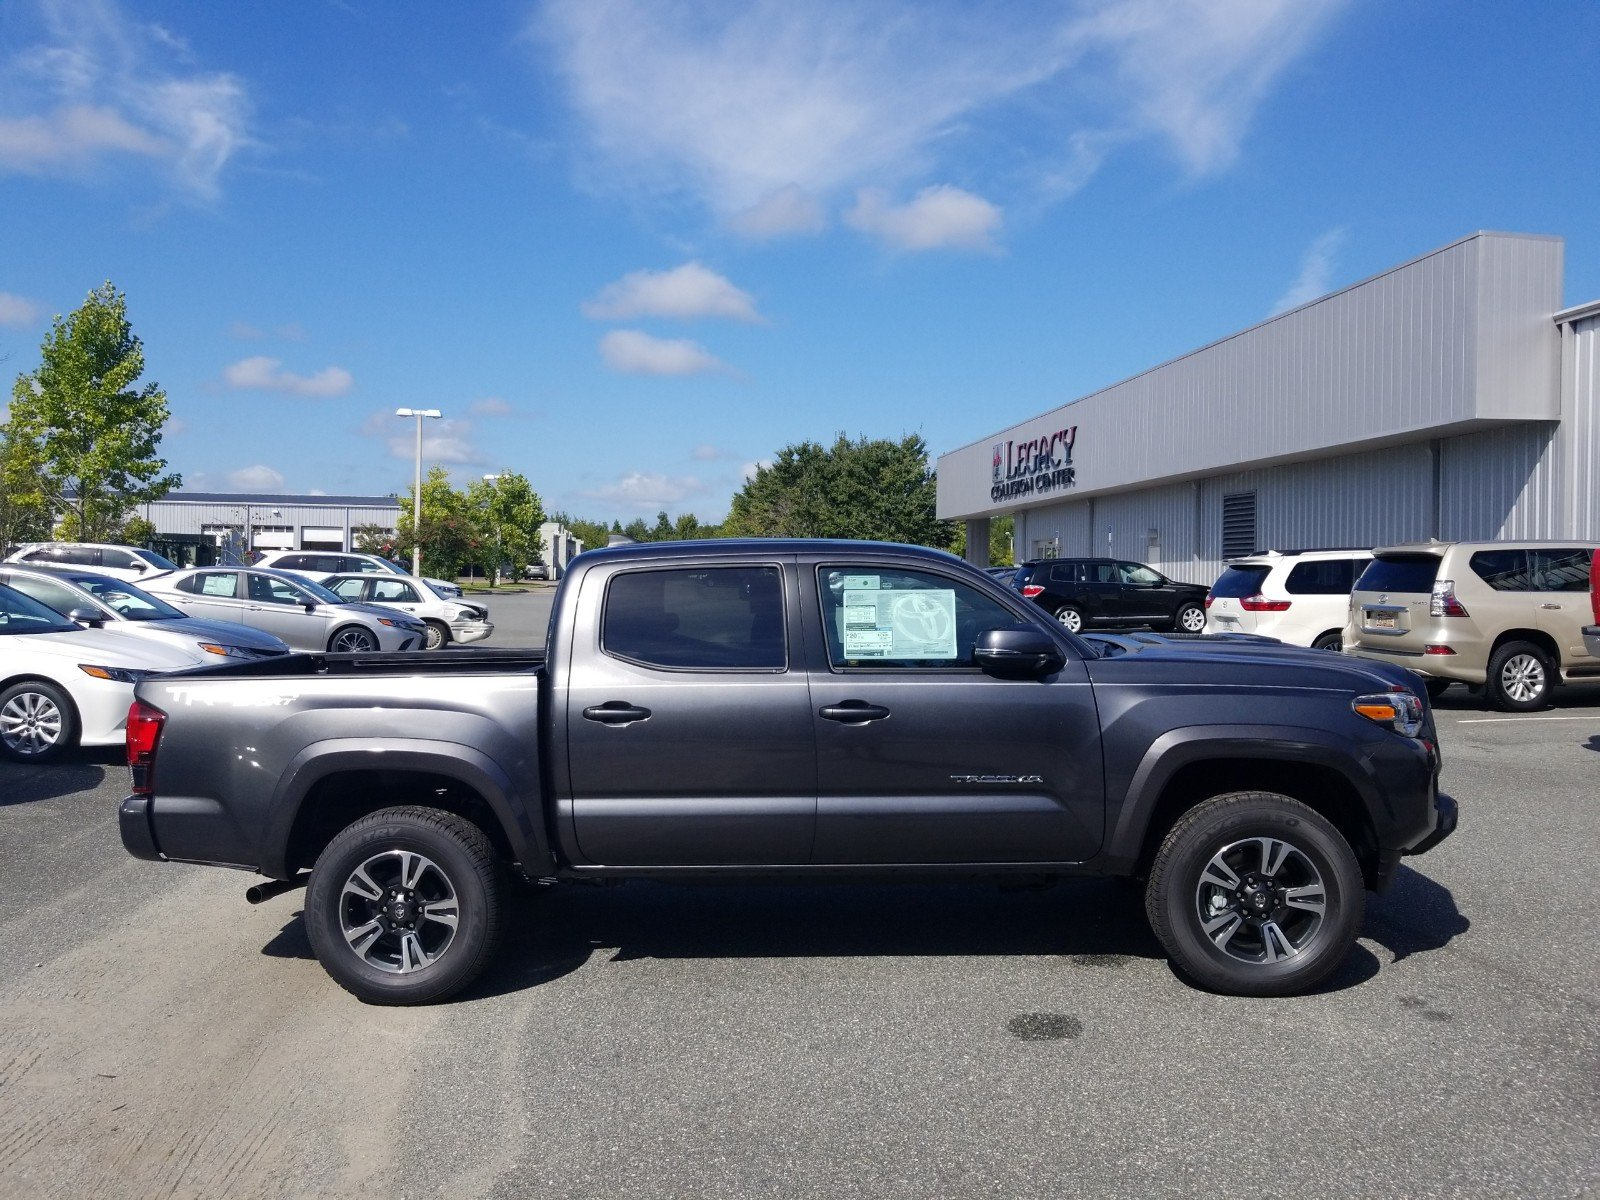 New 2019 Toyota Tacoma Trd Sport Double Cab In Tallahassee M189372 2005 Fuel Filter